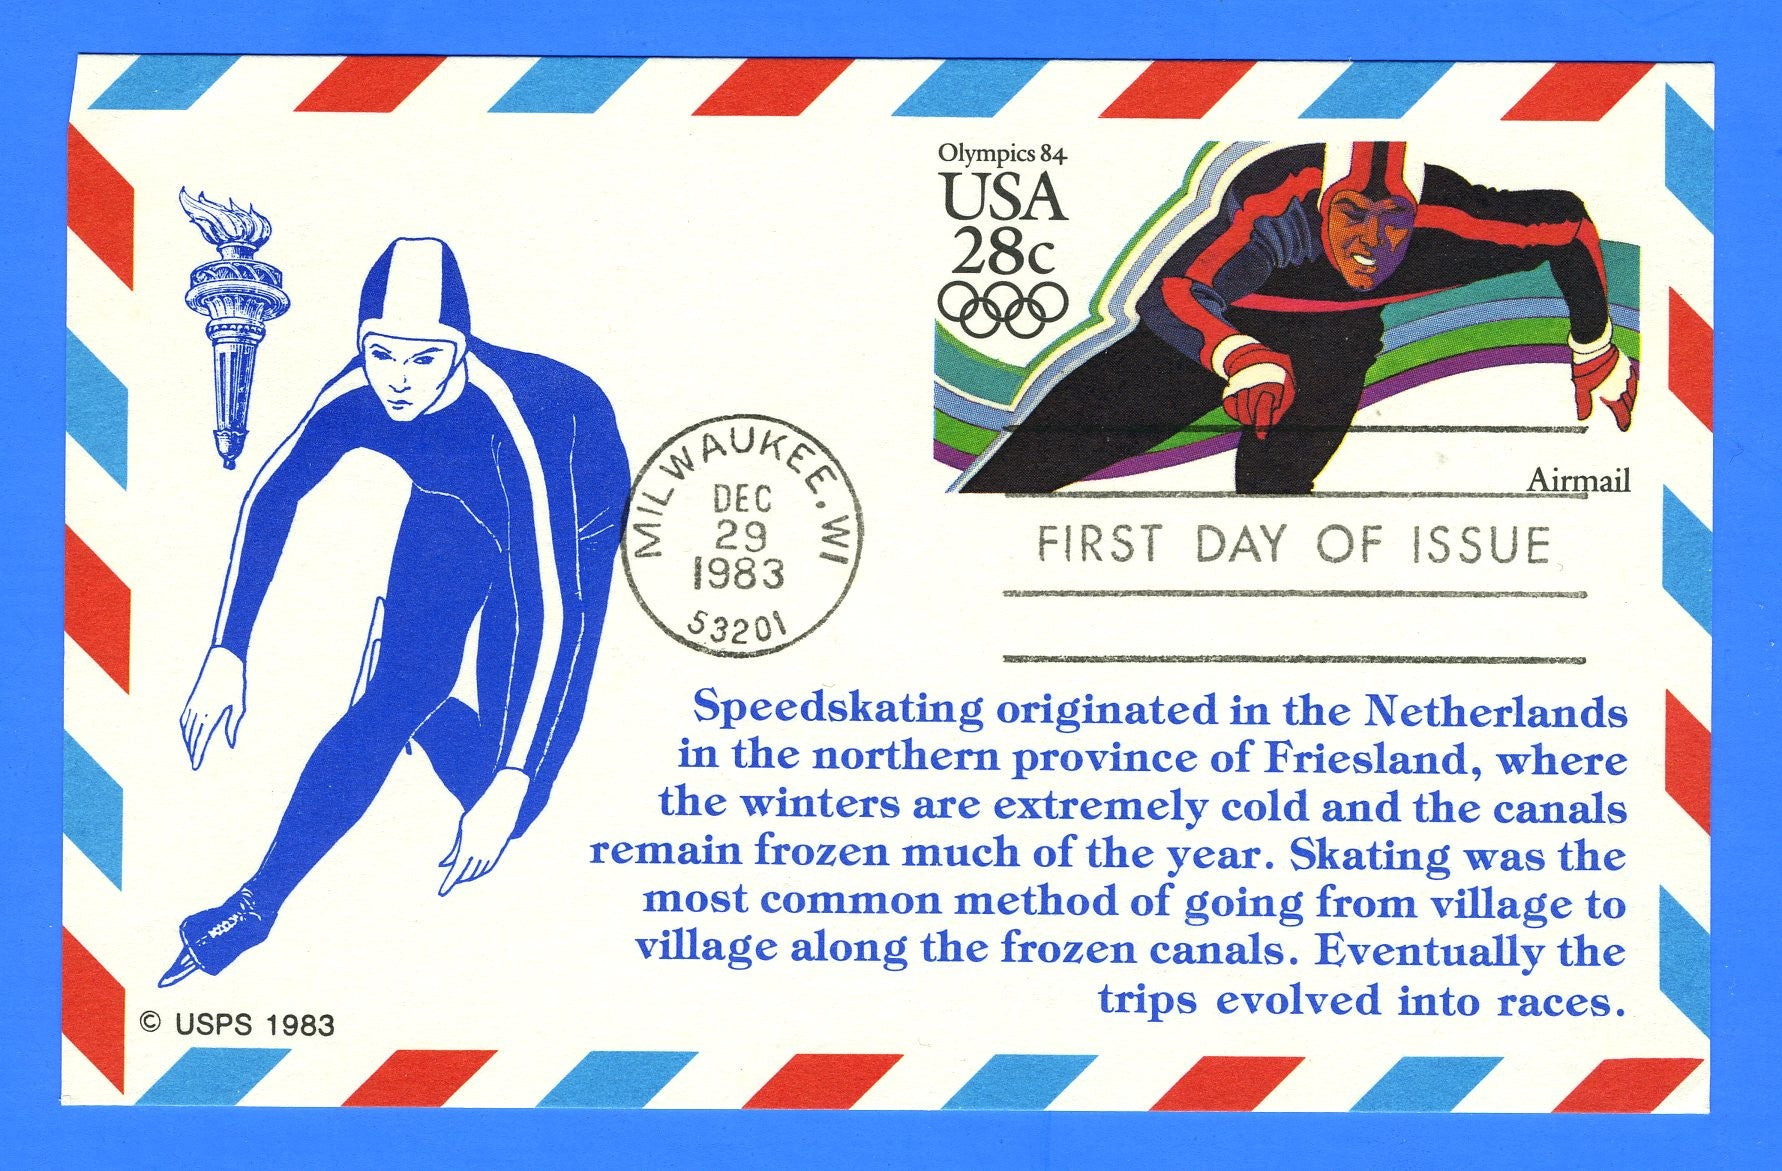 Scott UXC21 28c Olympic Speed Skating Air Mail FDOI Postal Card by KMC Venture